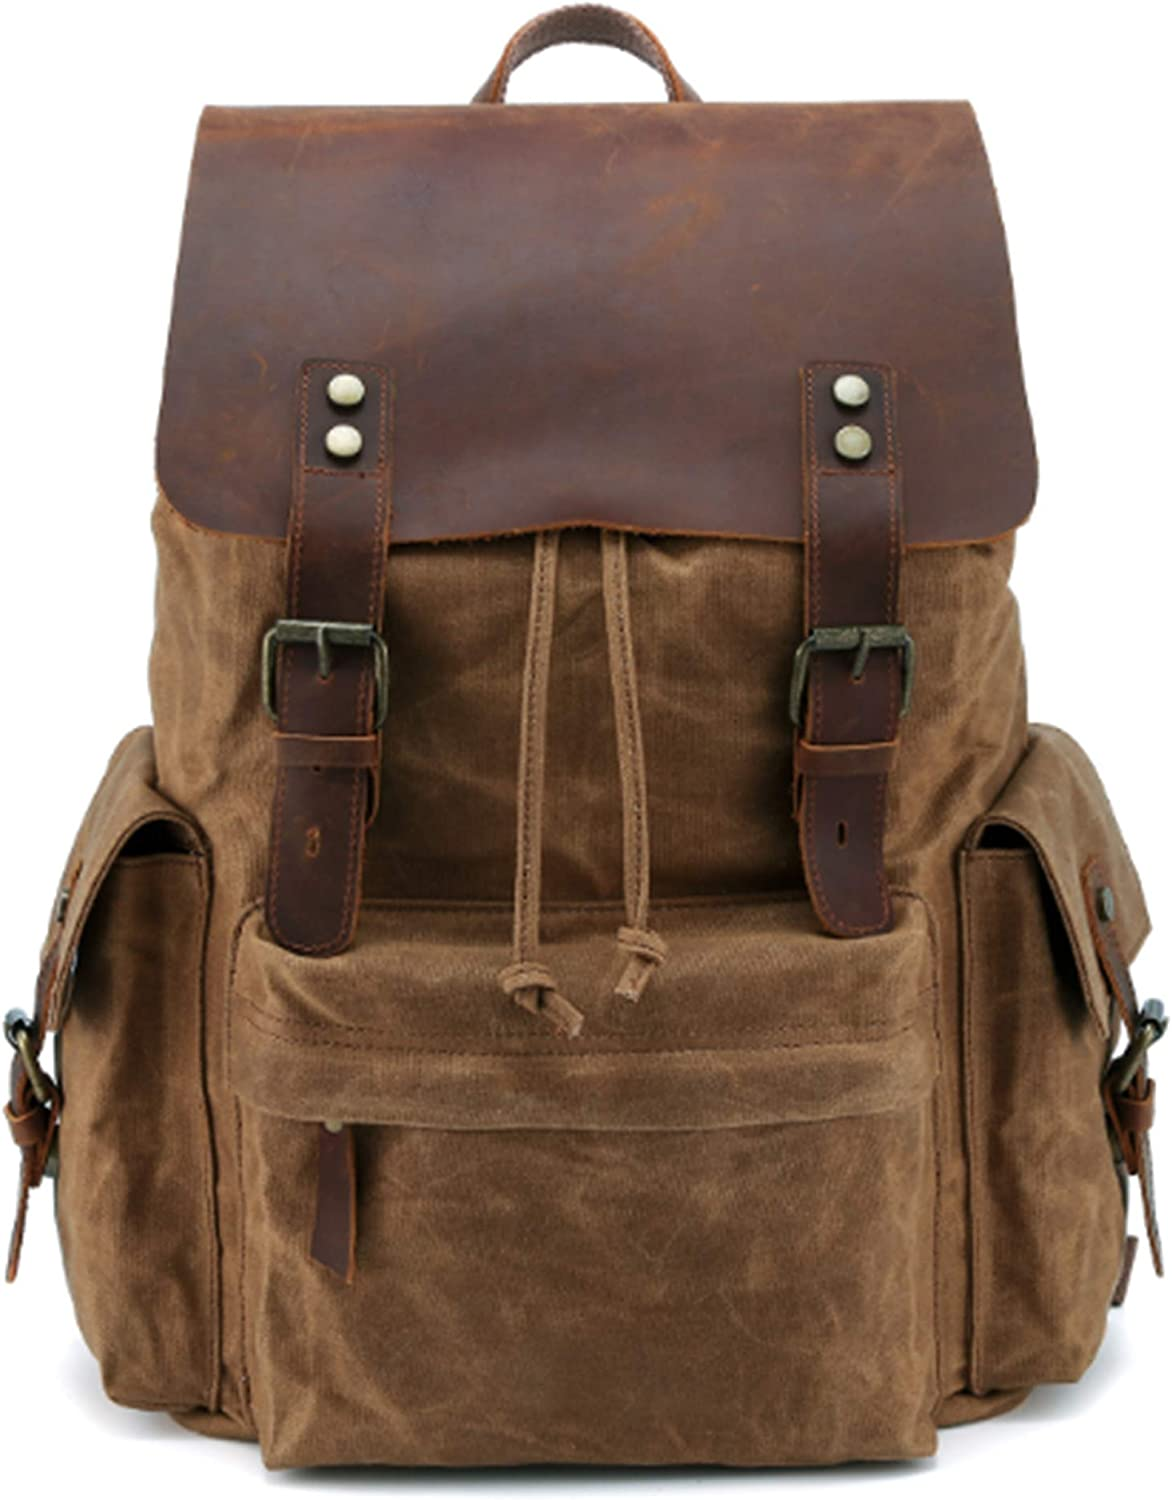 Canada style 2020new made waxed canvas backpack15.6 Inch Laptop Genuine leather(Oil wax waterproof)shoulder Bag vintage computer rucksack for Men&women,professional Outdoor hiking travel school(khaki)